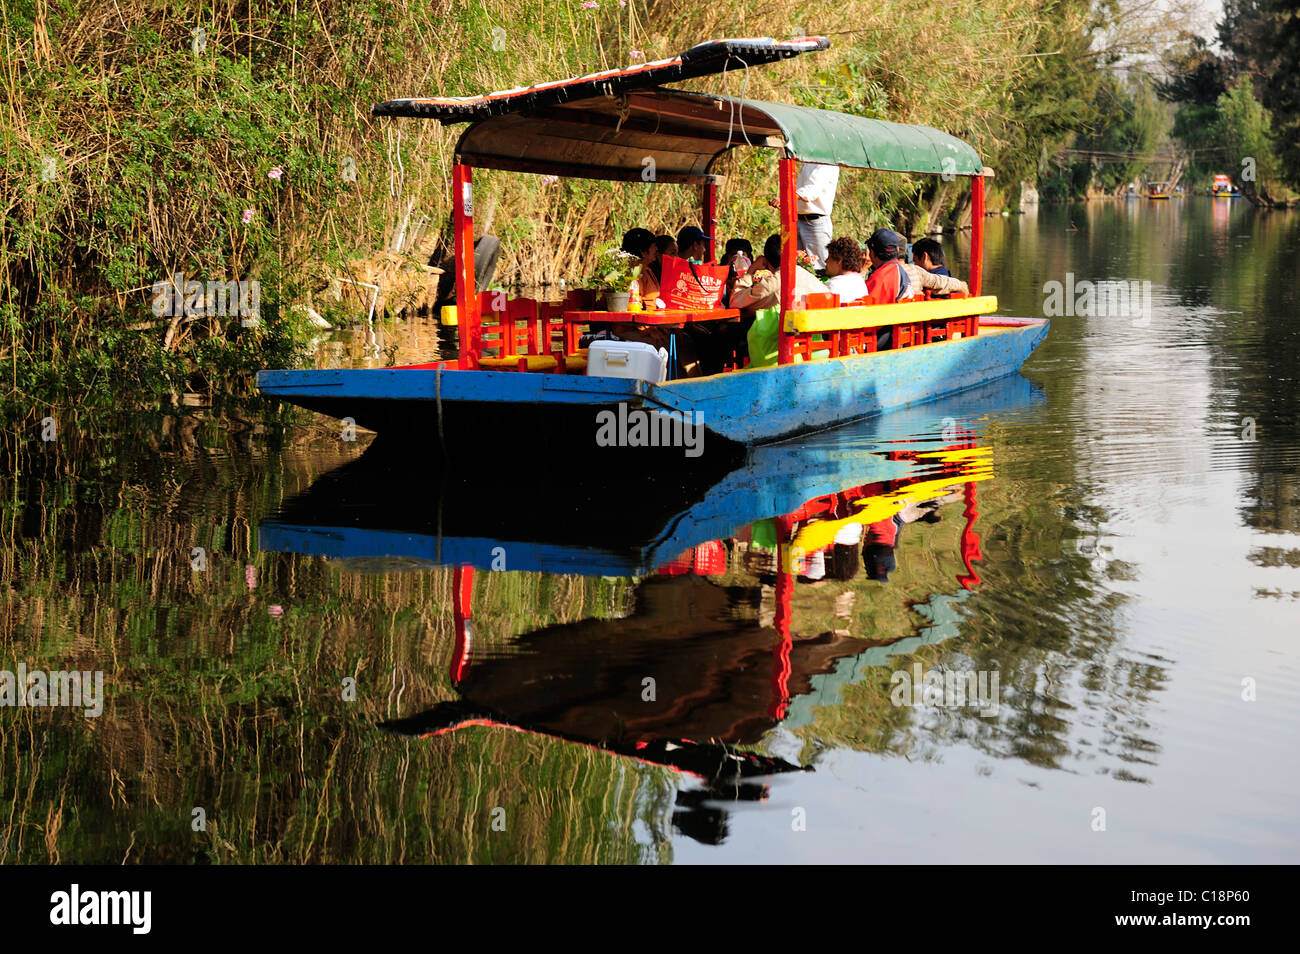 Colourful boat on canal in Xochimilco, Mexico City, Mexico - Stock Image